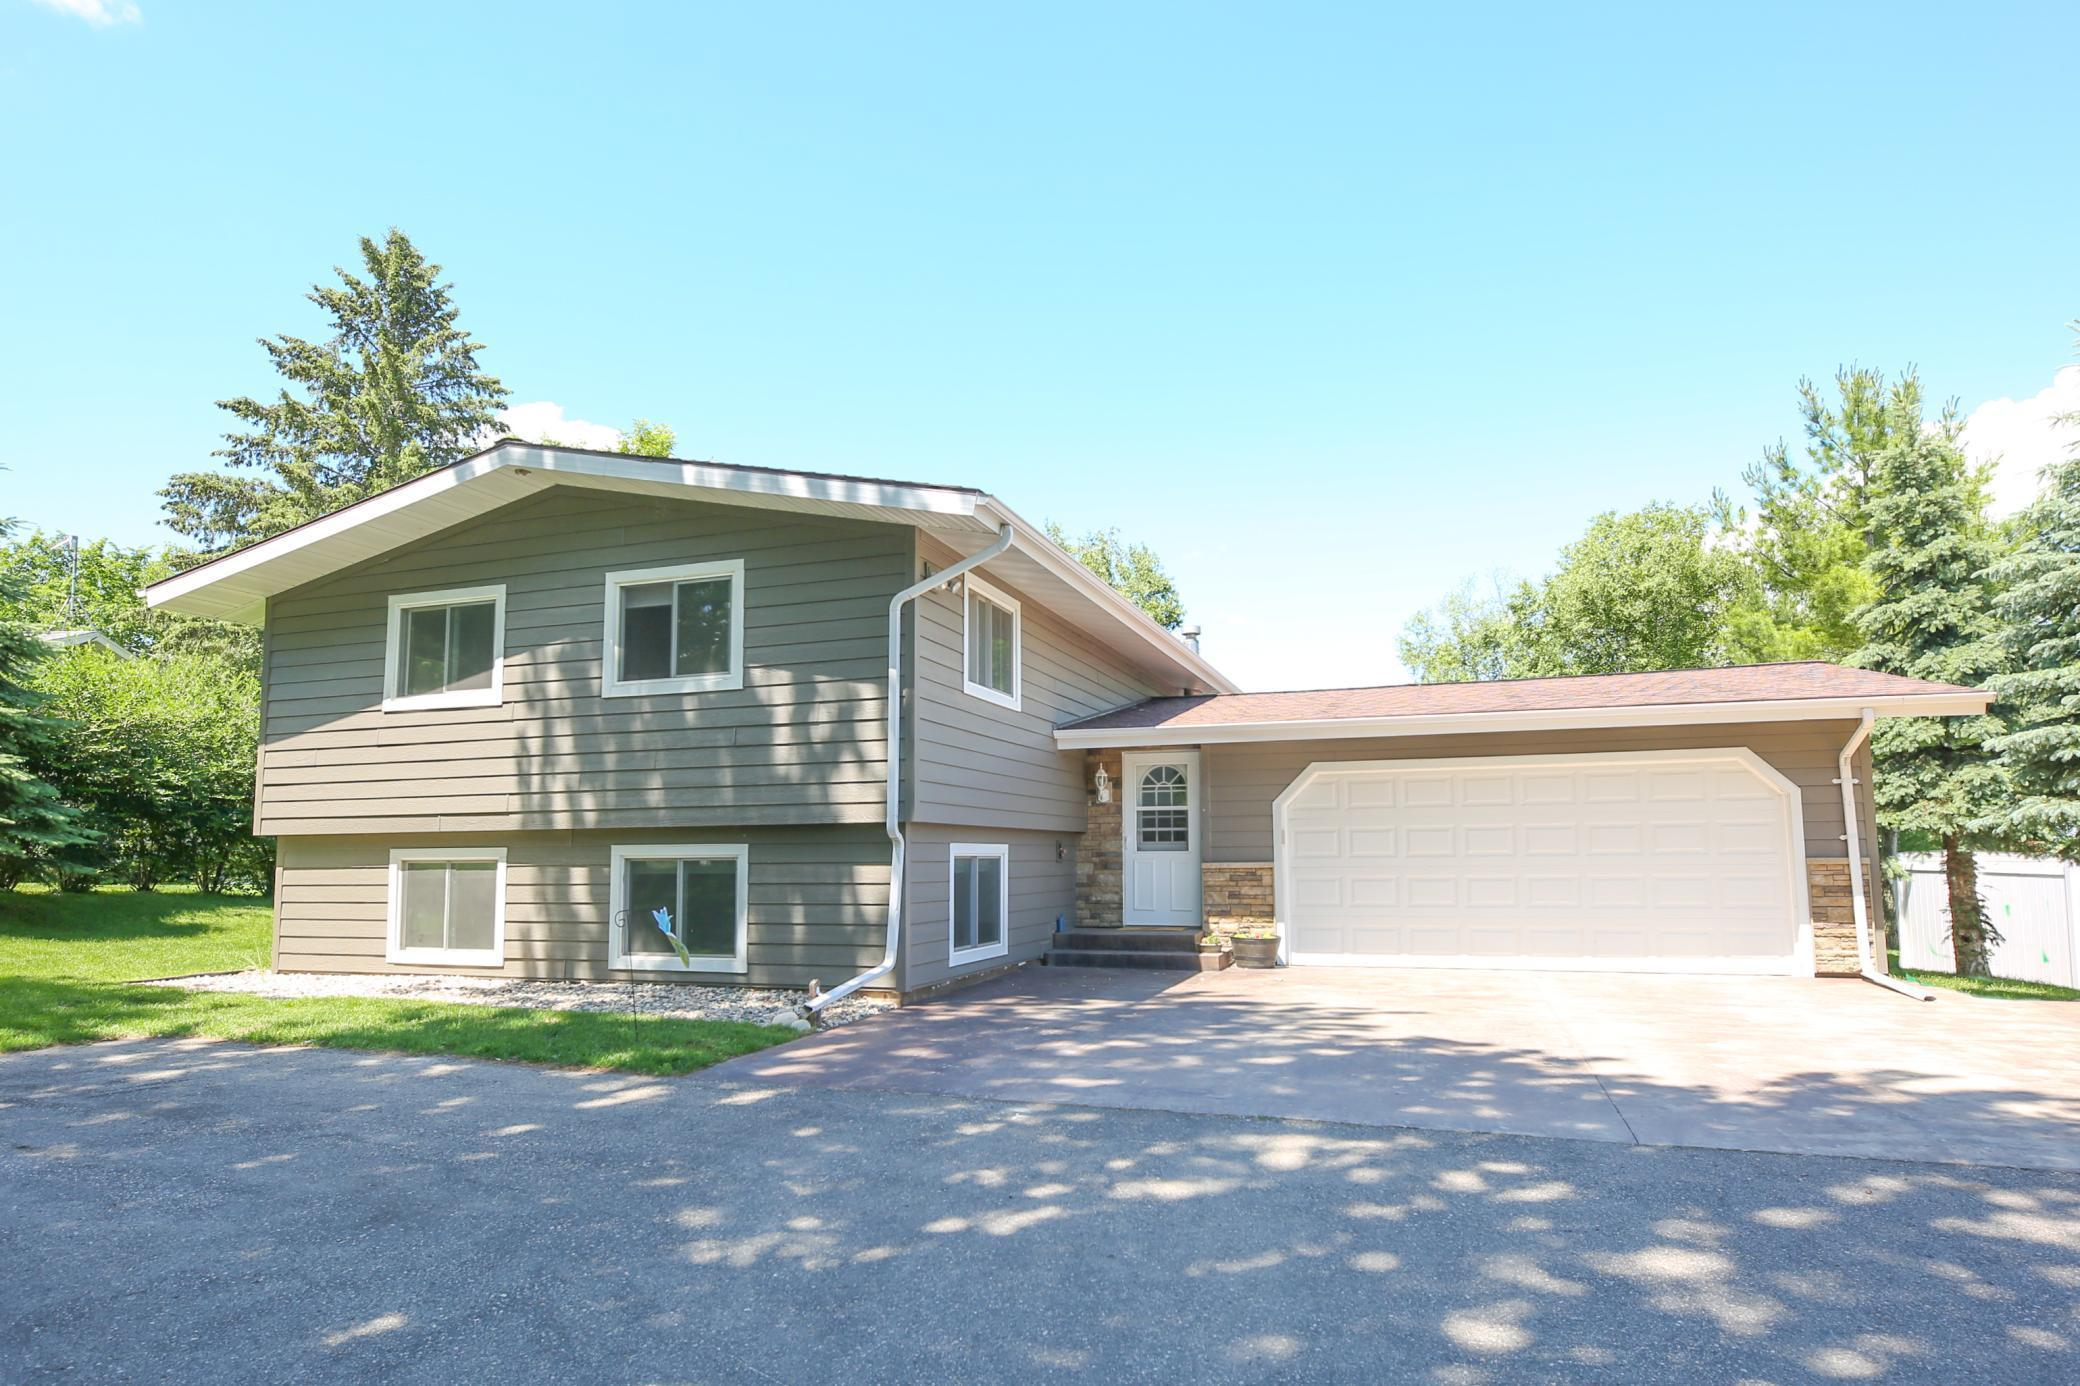 8138 E Lake Carlos Dr NE Property Photo - Carlos, MN real estate listing